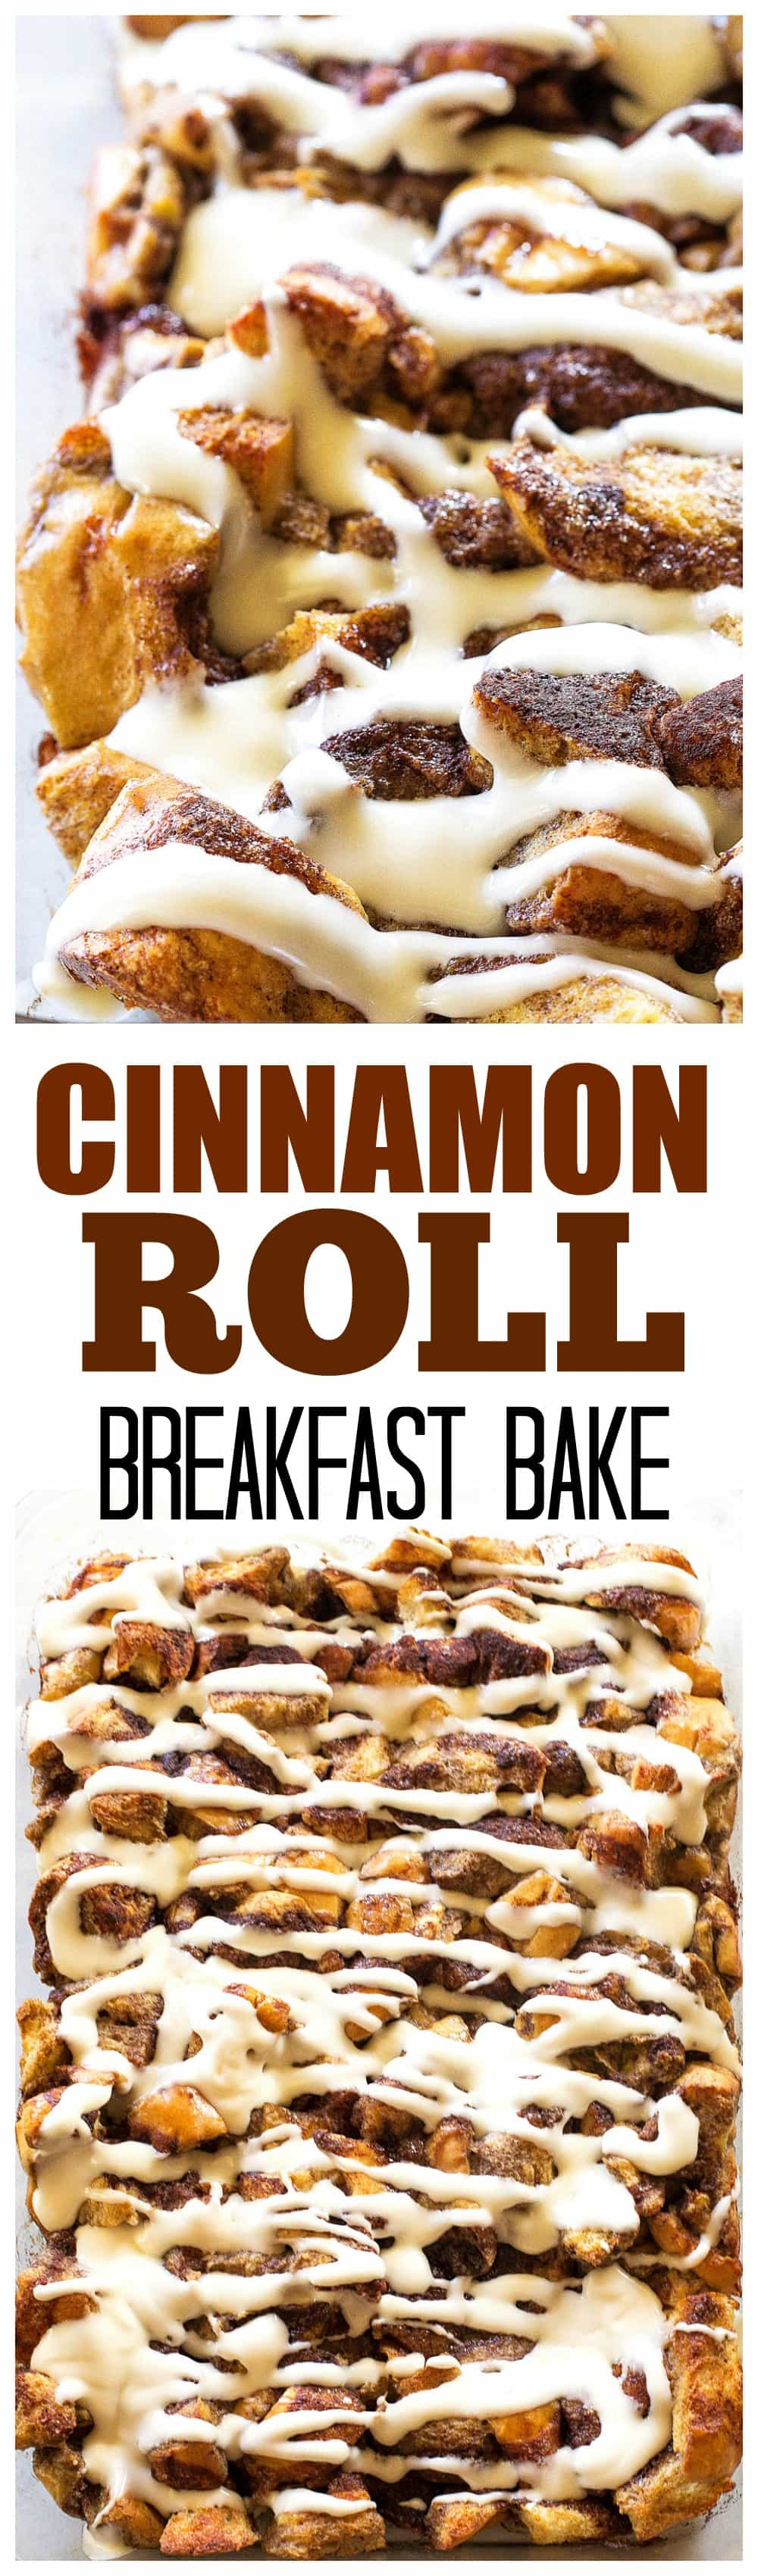 Cinnamon Roll Breakfast Bake - this is made from scratch, no canned cinnamon rolls. Who wouldn't want to wake up to this? #breakfast #casserole #cinnamon